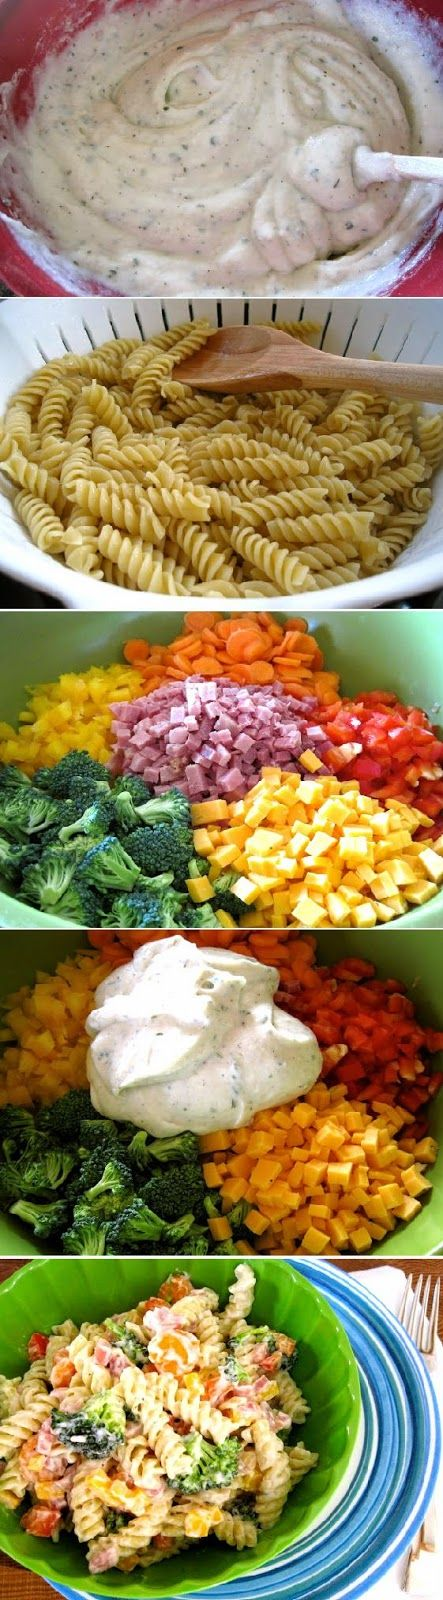 Pasta Salad colored